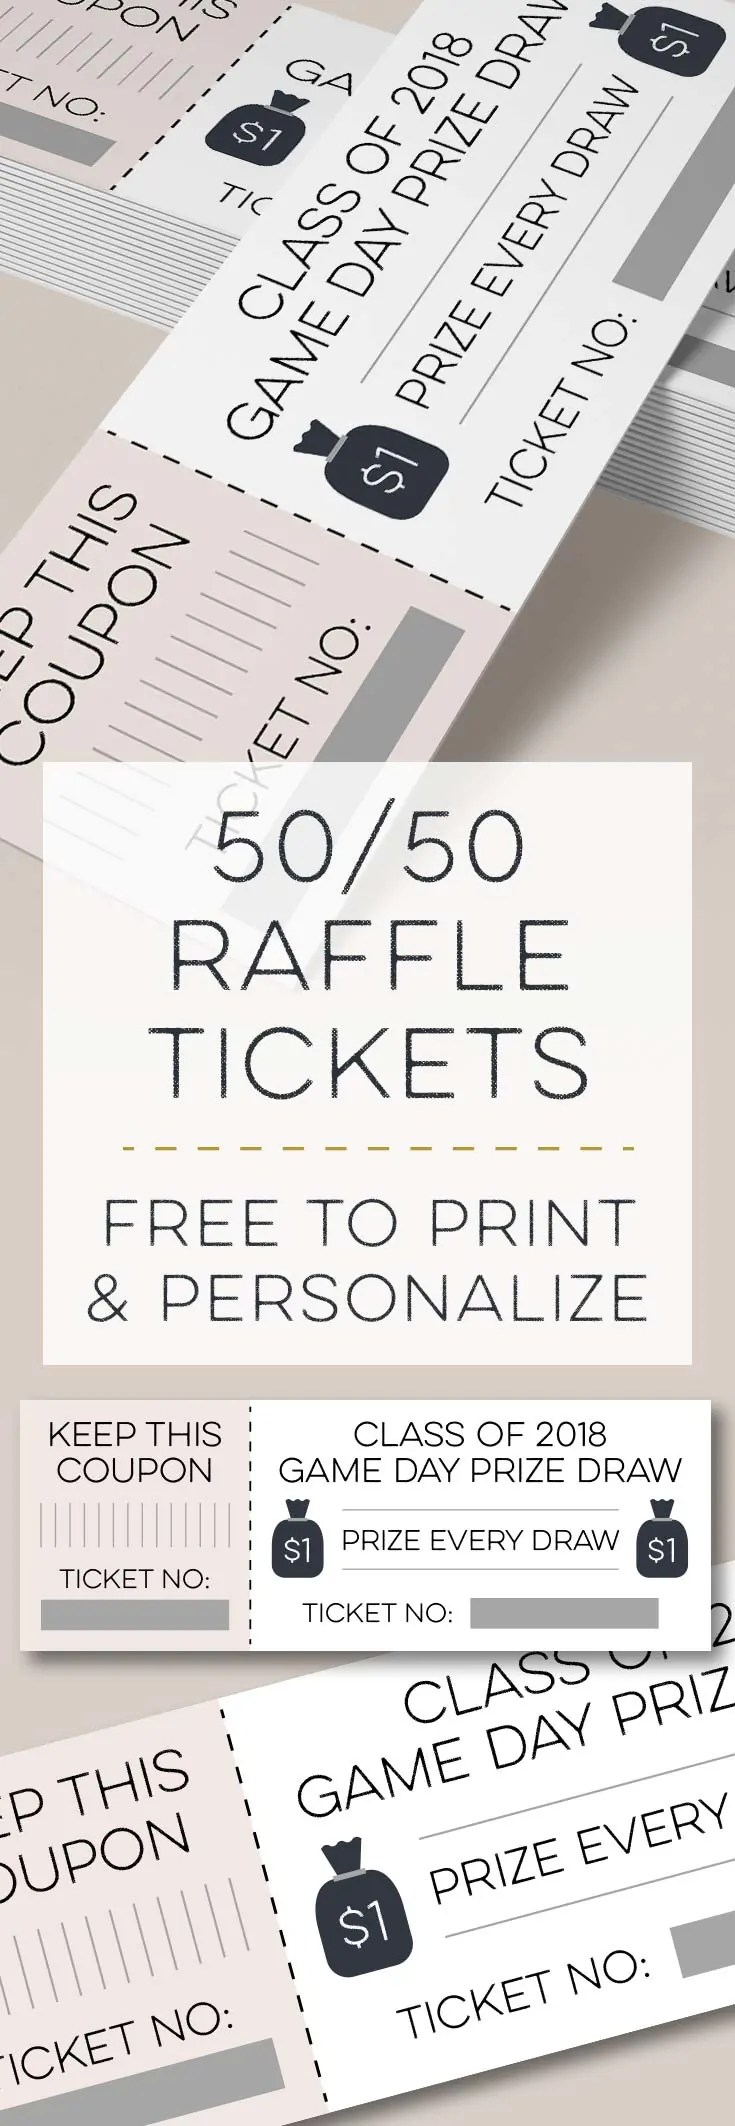 Moneybags 5050 Raffle Tickets Free Printables Online